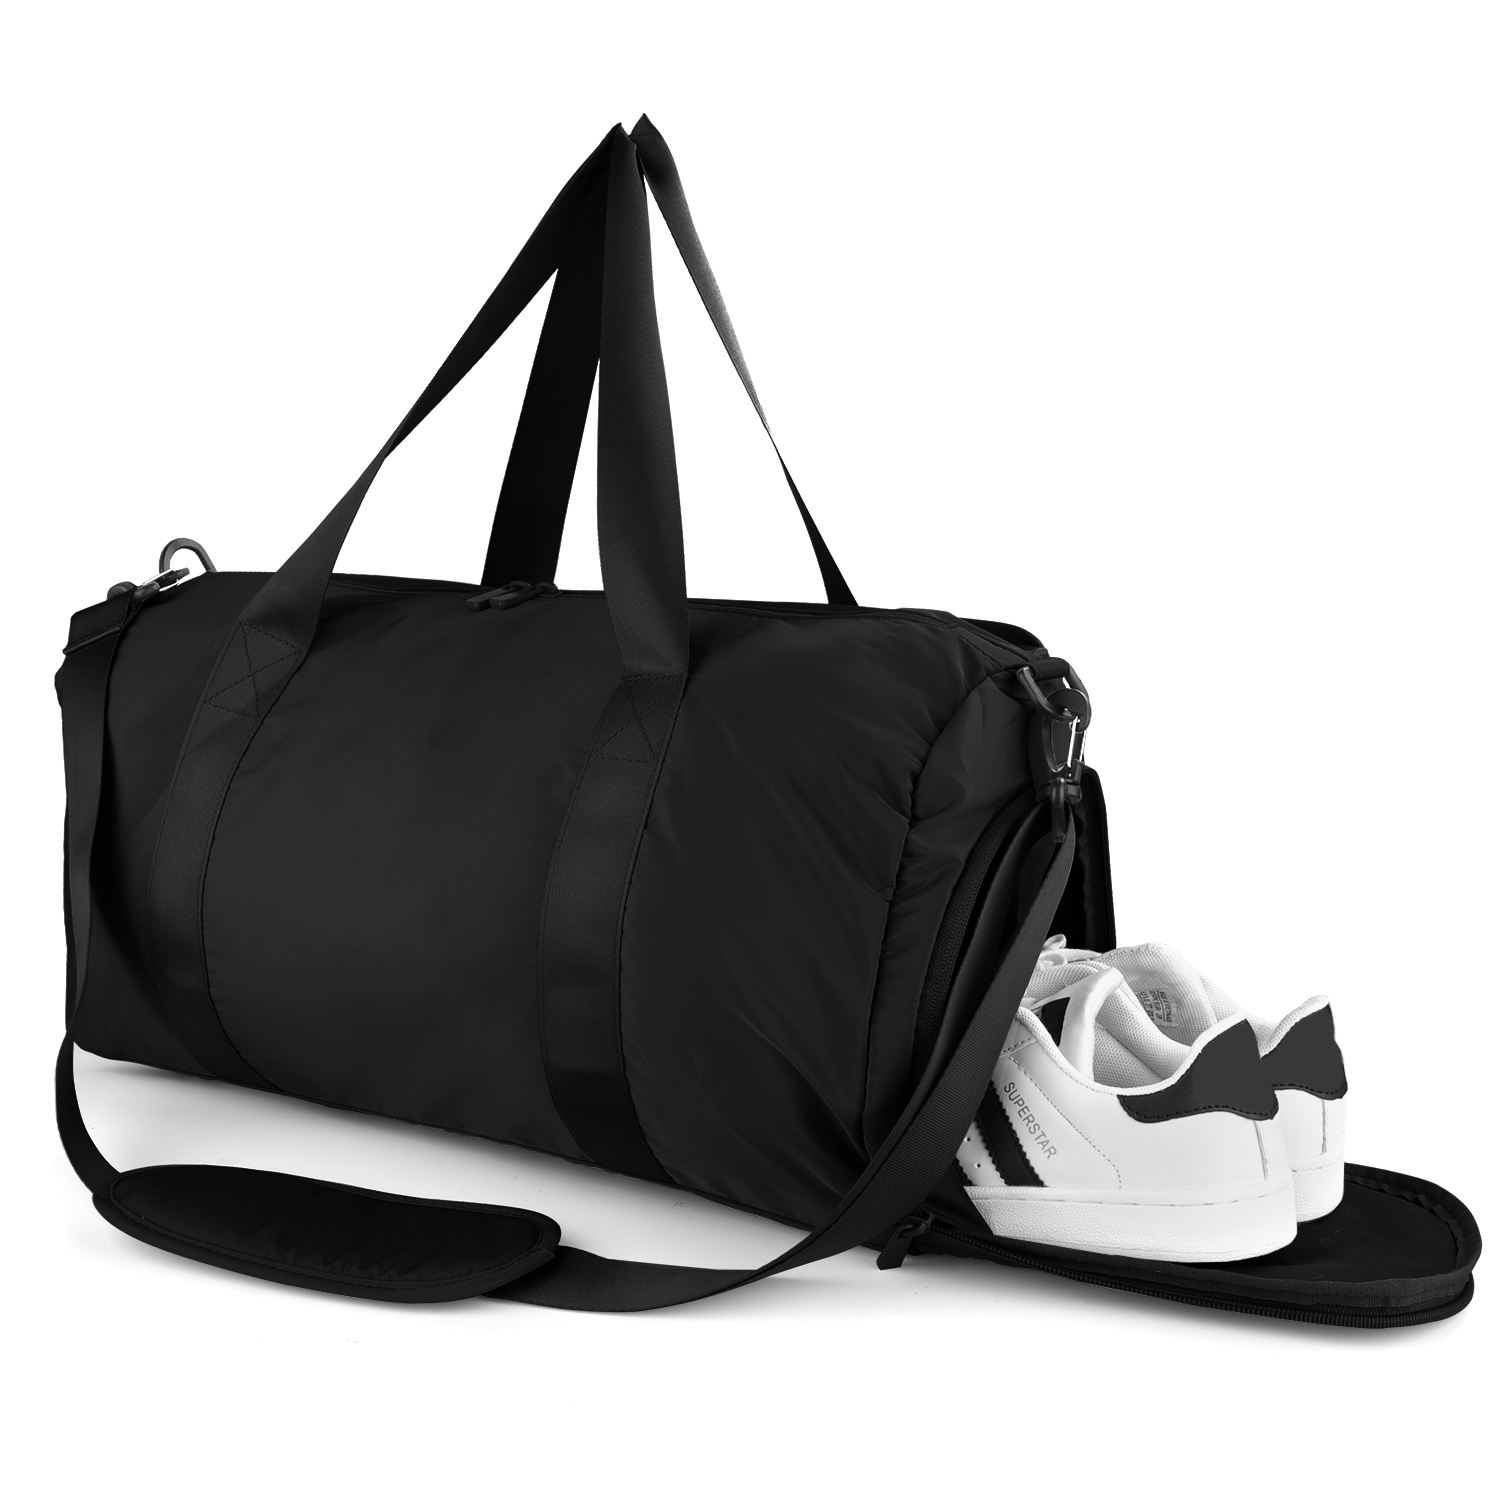 SGA00233 Sport Outdoor Wet Dry Compartment Travel Packing Gym Bag